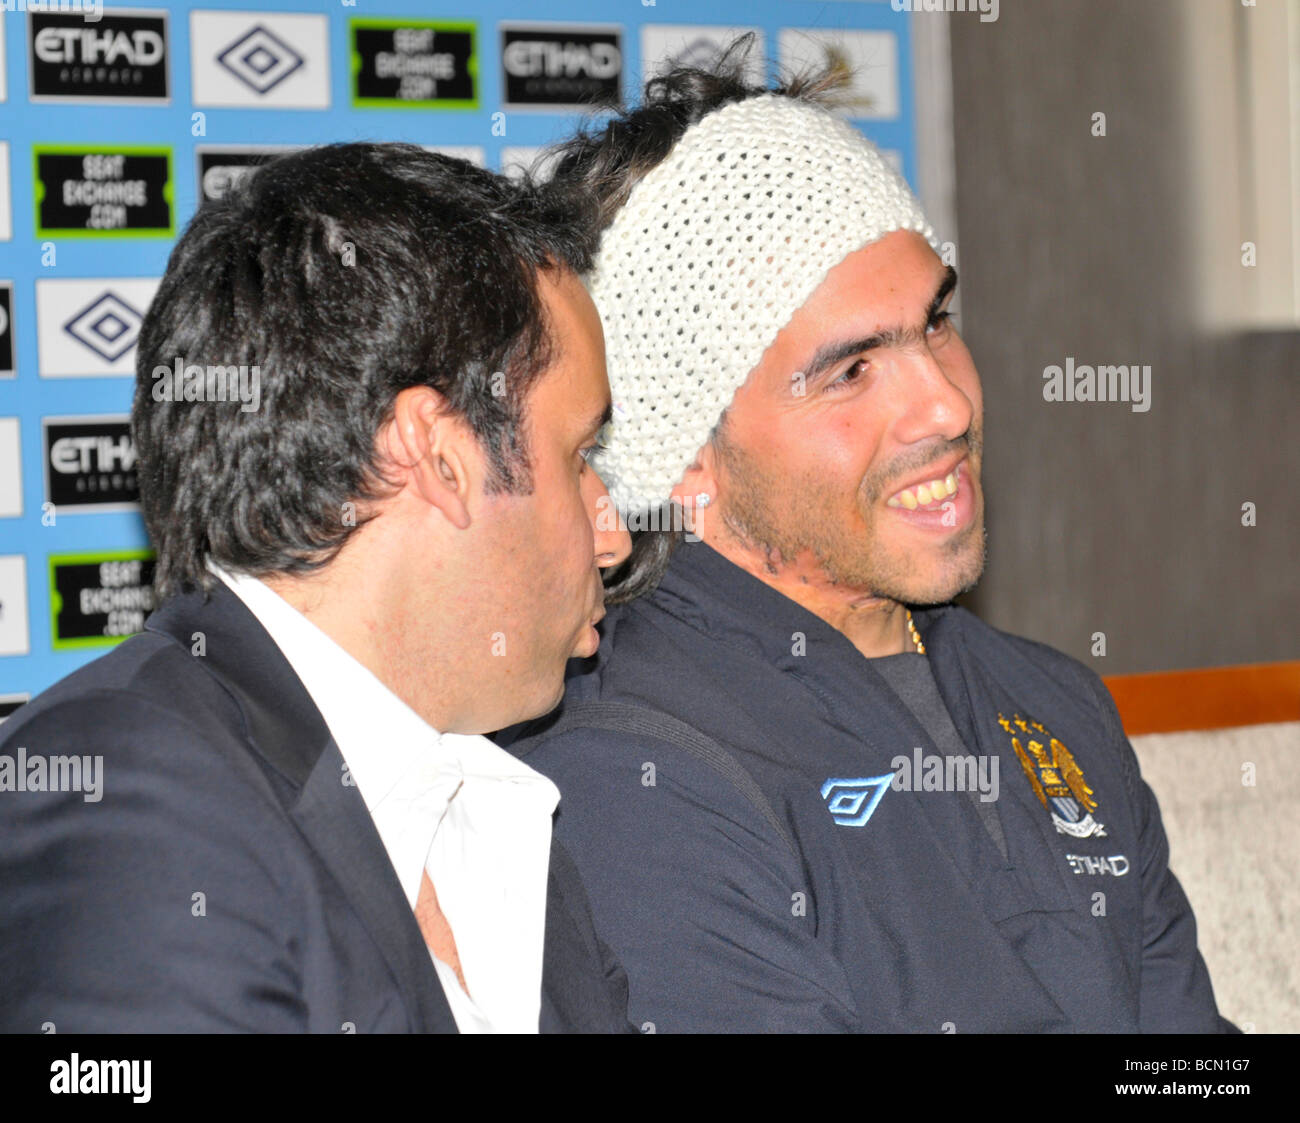 carlos tevez with interpreter at press conference when he signs for manchester city - Stock Image